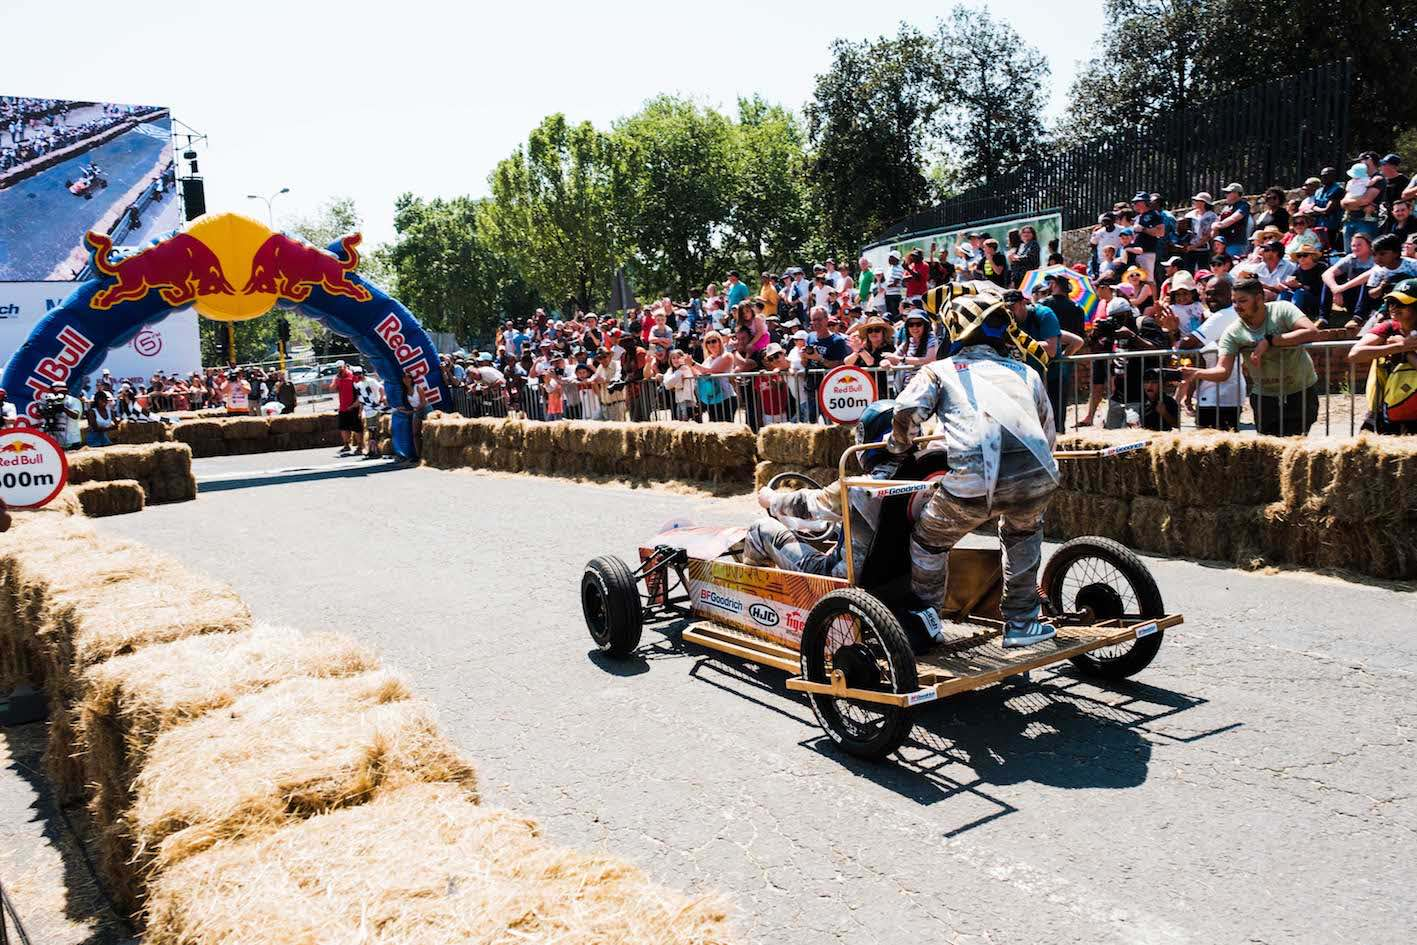 Racing into the finish line at Red Bull Box Cart Race 2018